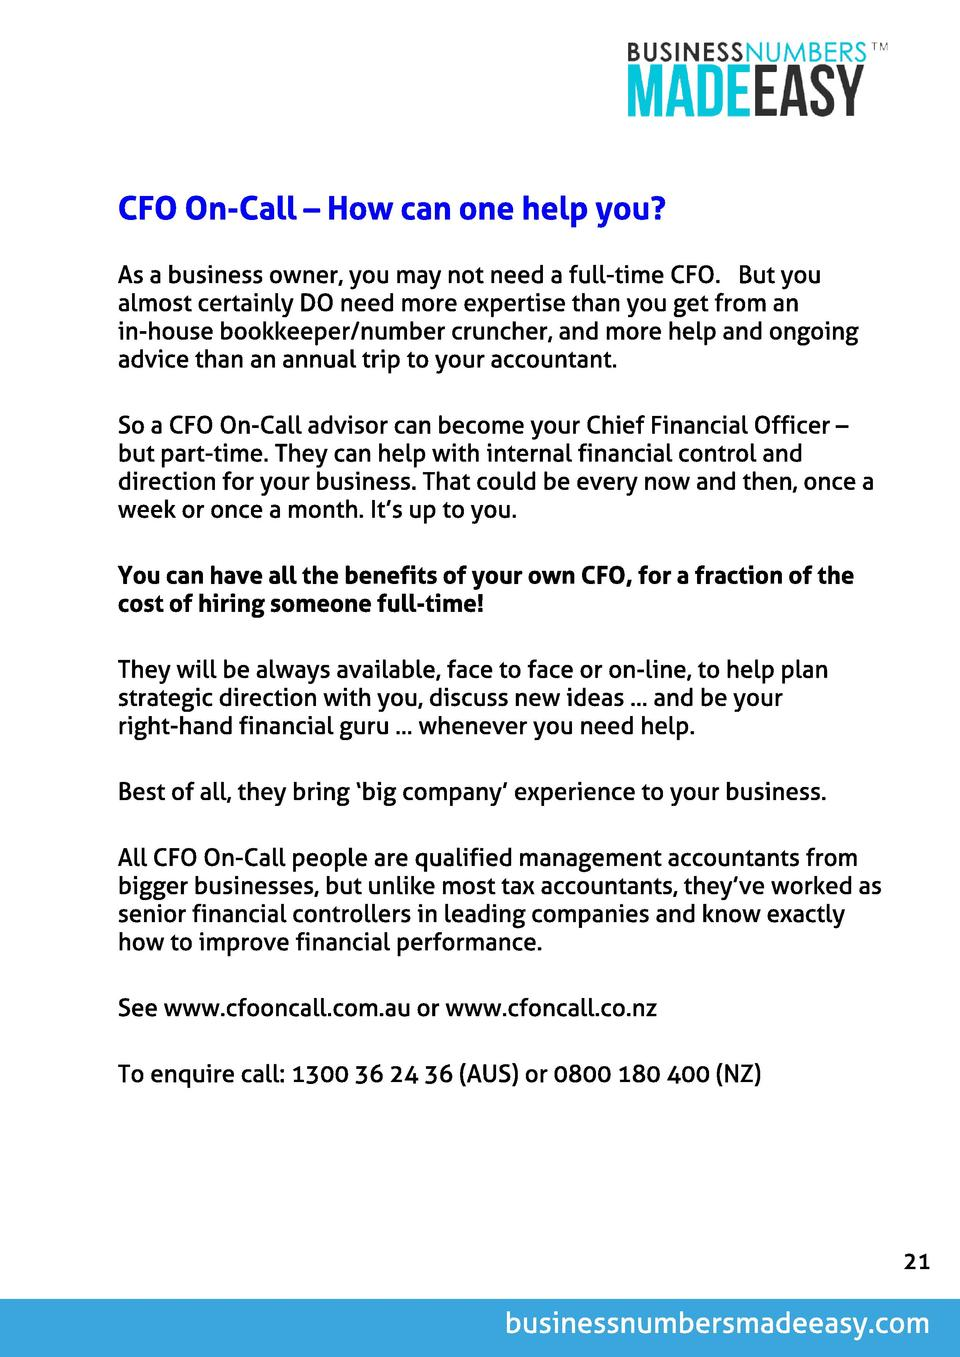 CFO On-Cal l   How can one hel p you  As a business owner, you may not need a full-time CFO. But you almost certainly DO n...